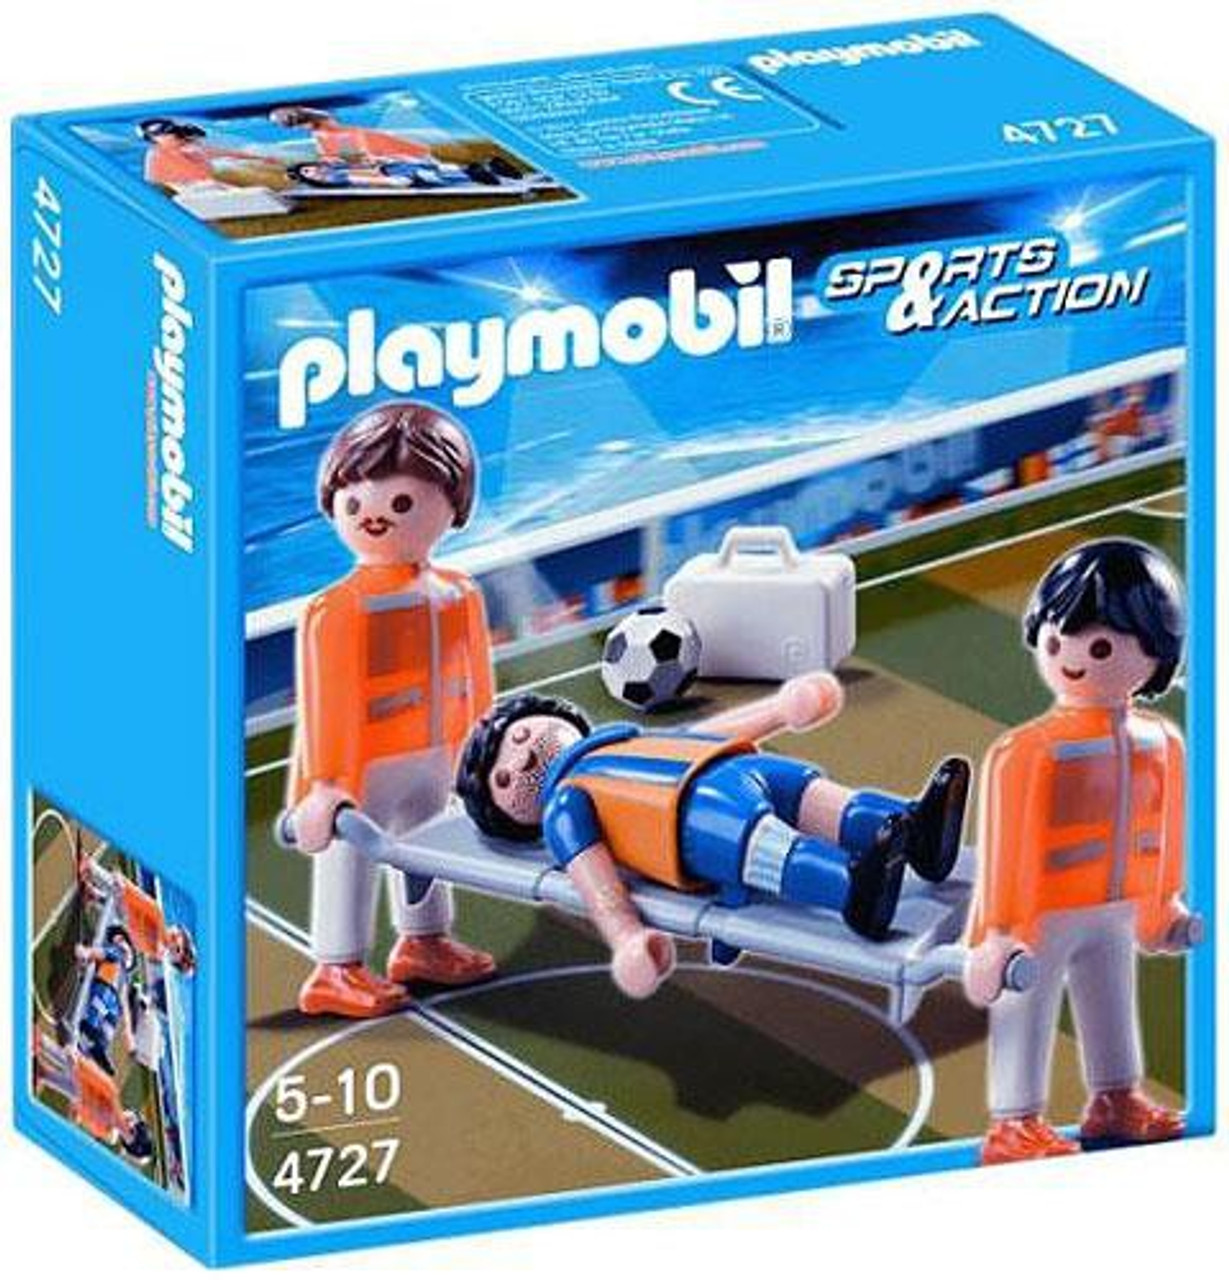 Playmobil Sports & Action Field Medics with Player Set #4727